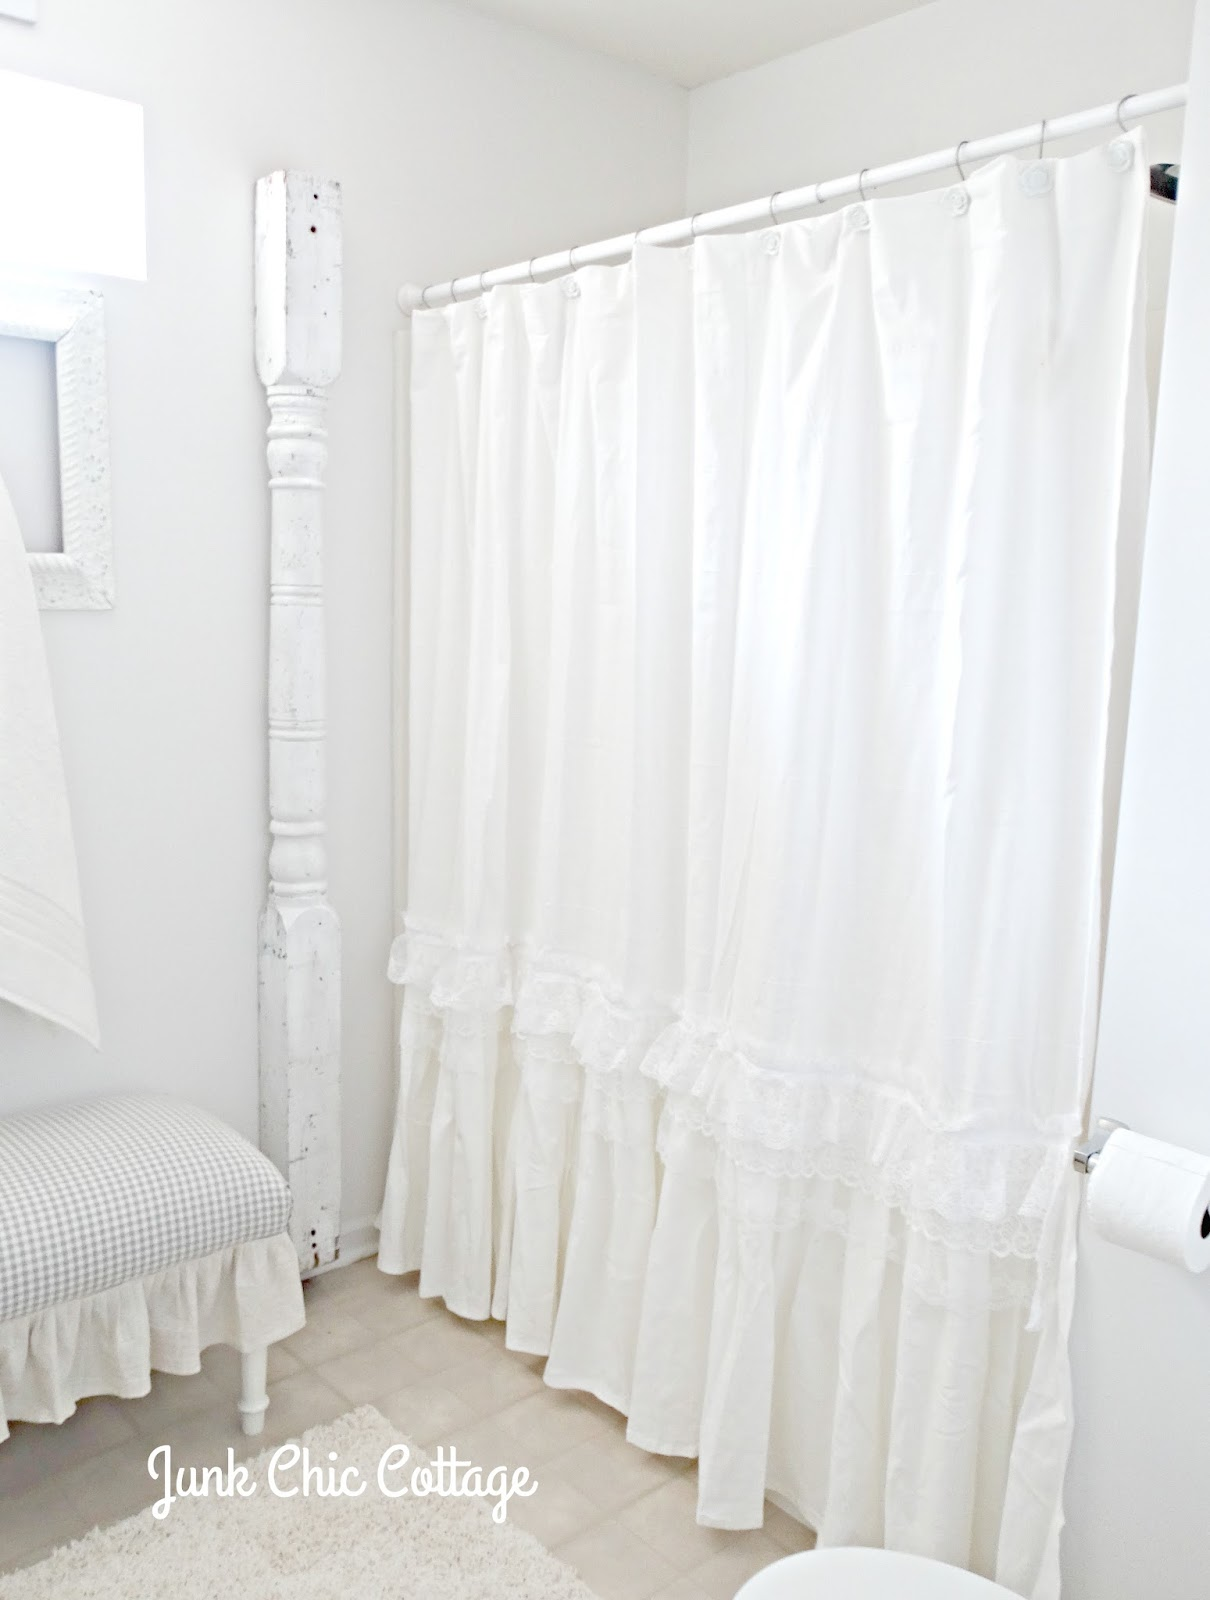 junk chic cottage ruffles repurposed shower curtains shout out lol i just noticed in this picture that i took off the vintage hanger hook i had on the old post i painted it and forgot to put it back up before